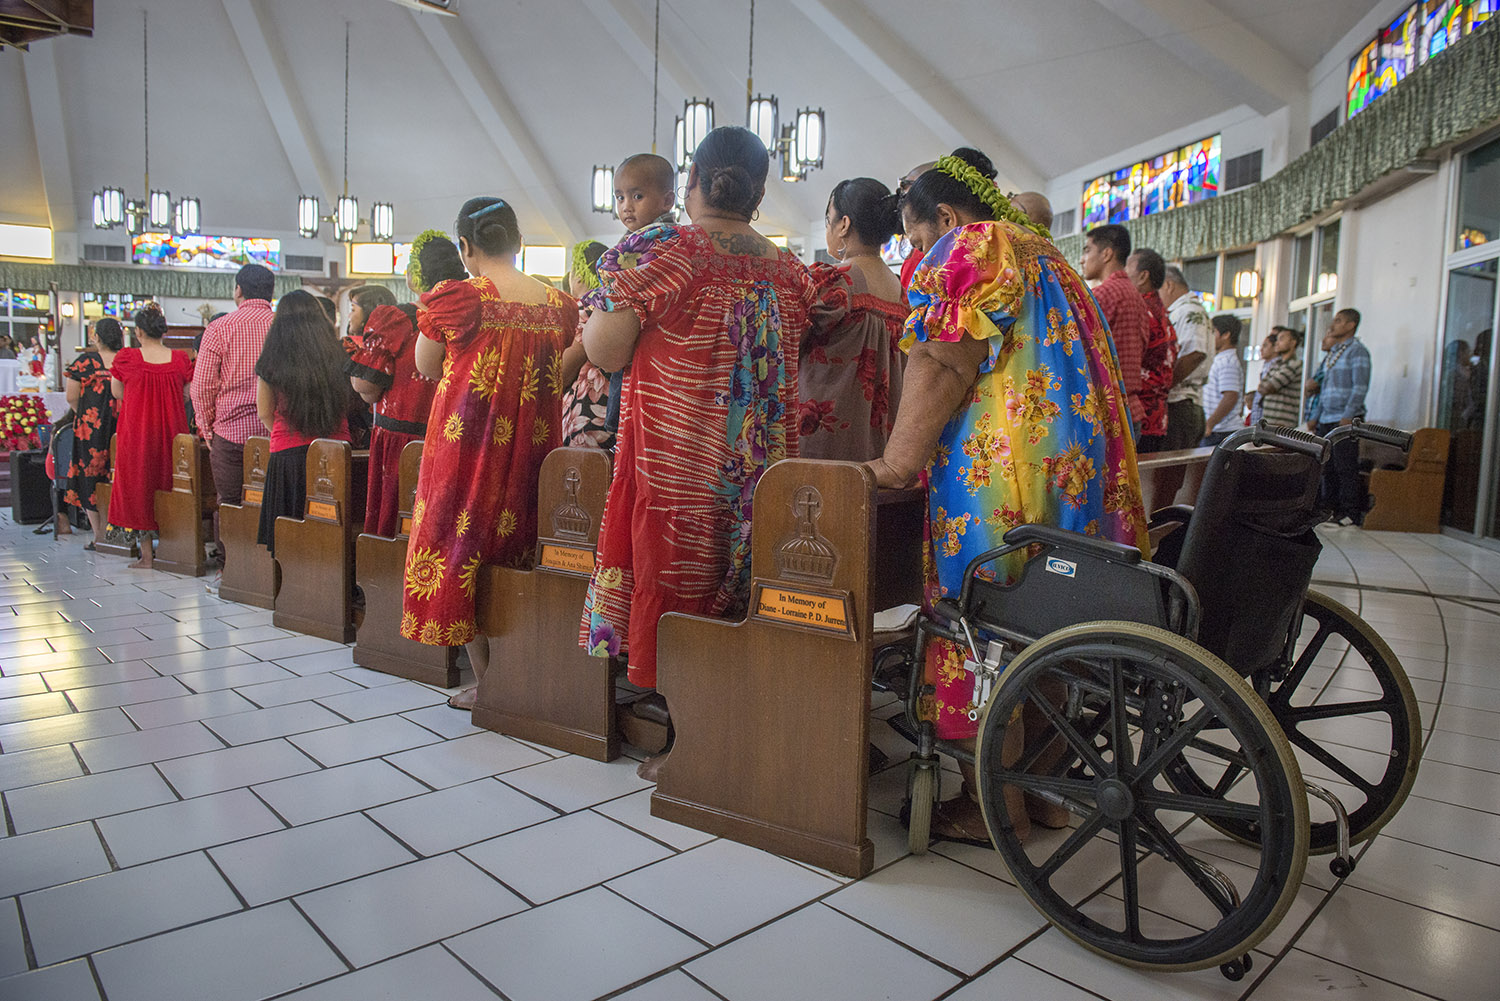 <p>It's estimated that asmany as 20,000 Micronesians now call Guam home. Someattend services at theParish of Santa Barbara in Dededo.</p>